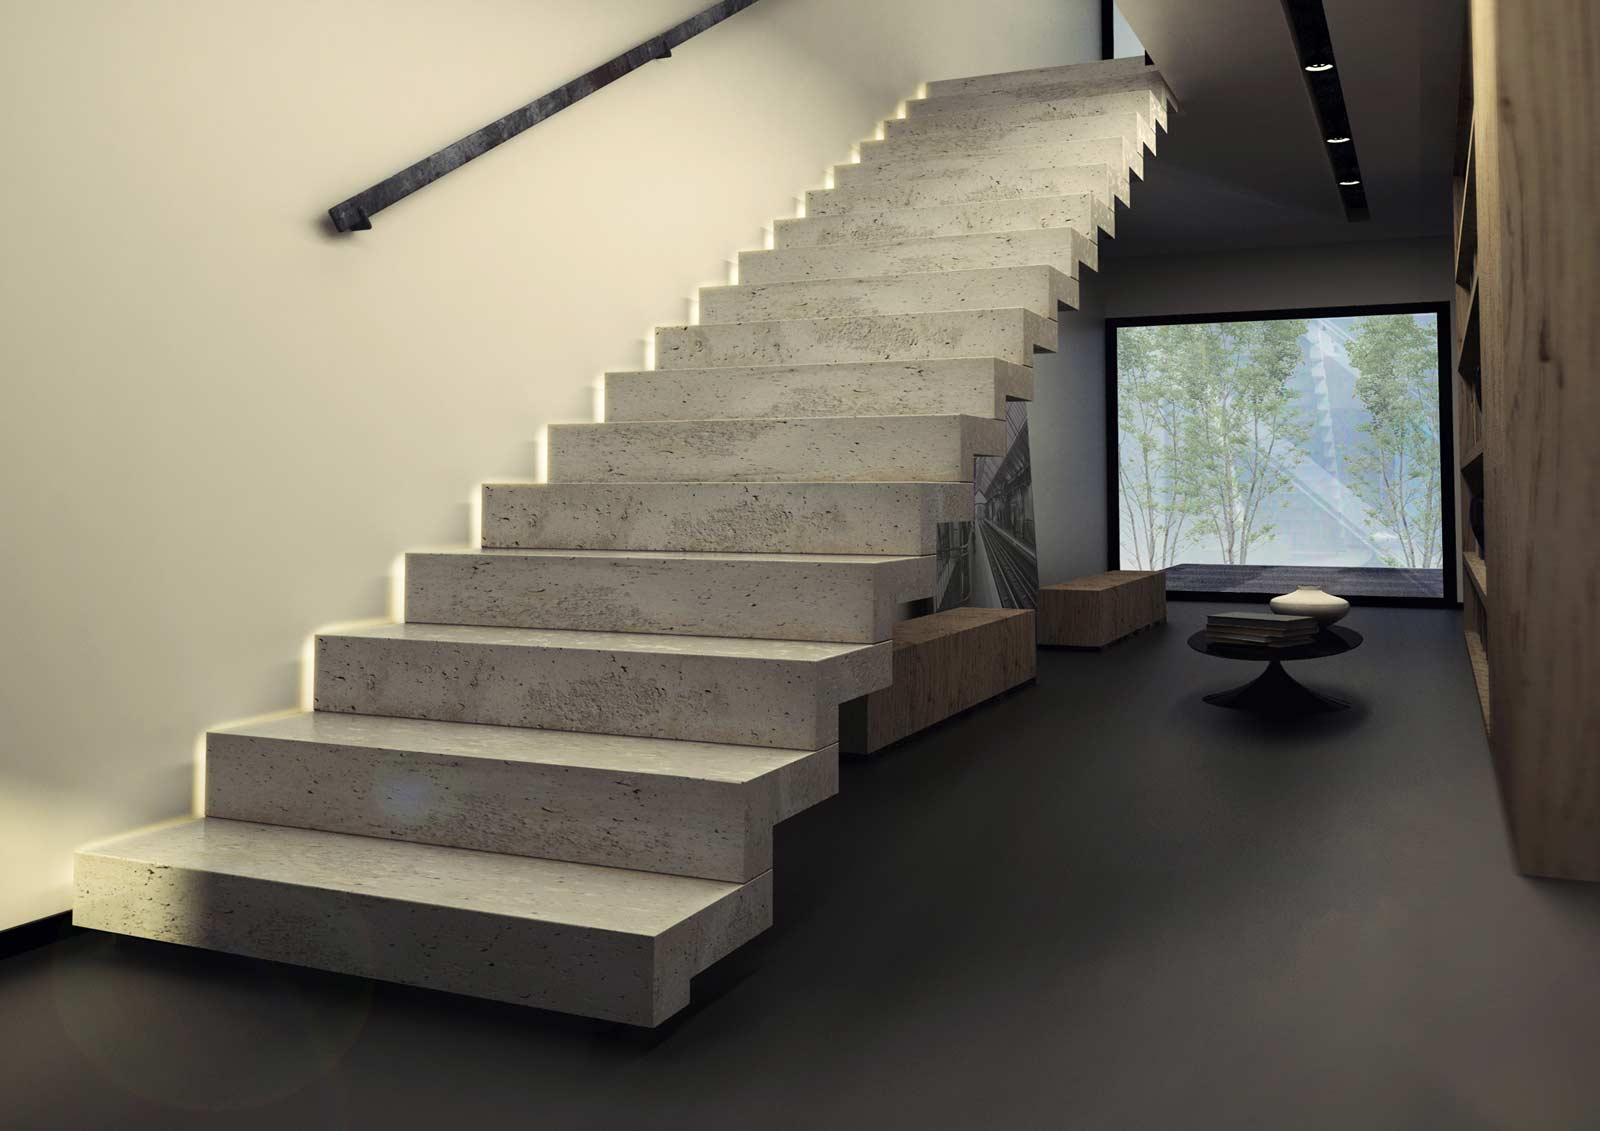 Escalier Design Beton Le Top 10 Des Escaliers Droits Design Le Blog De Loftboutik